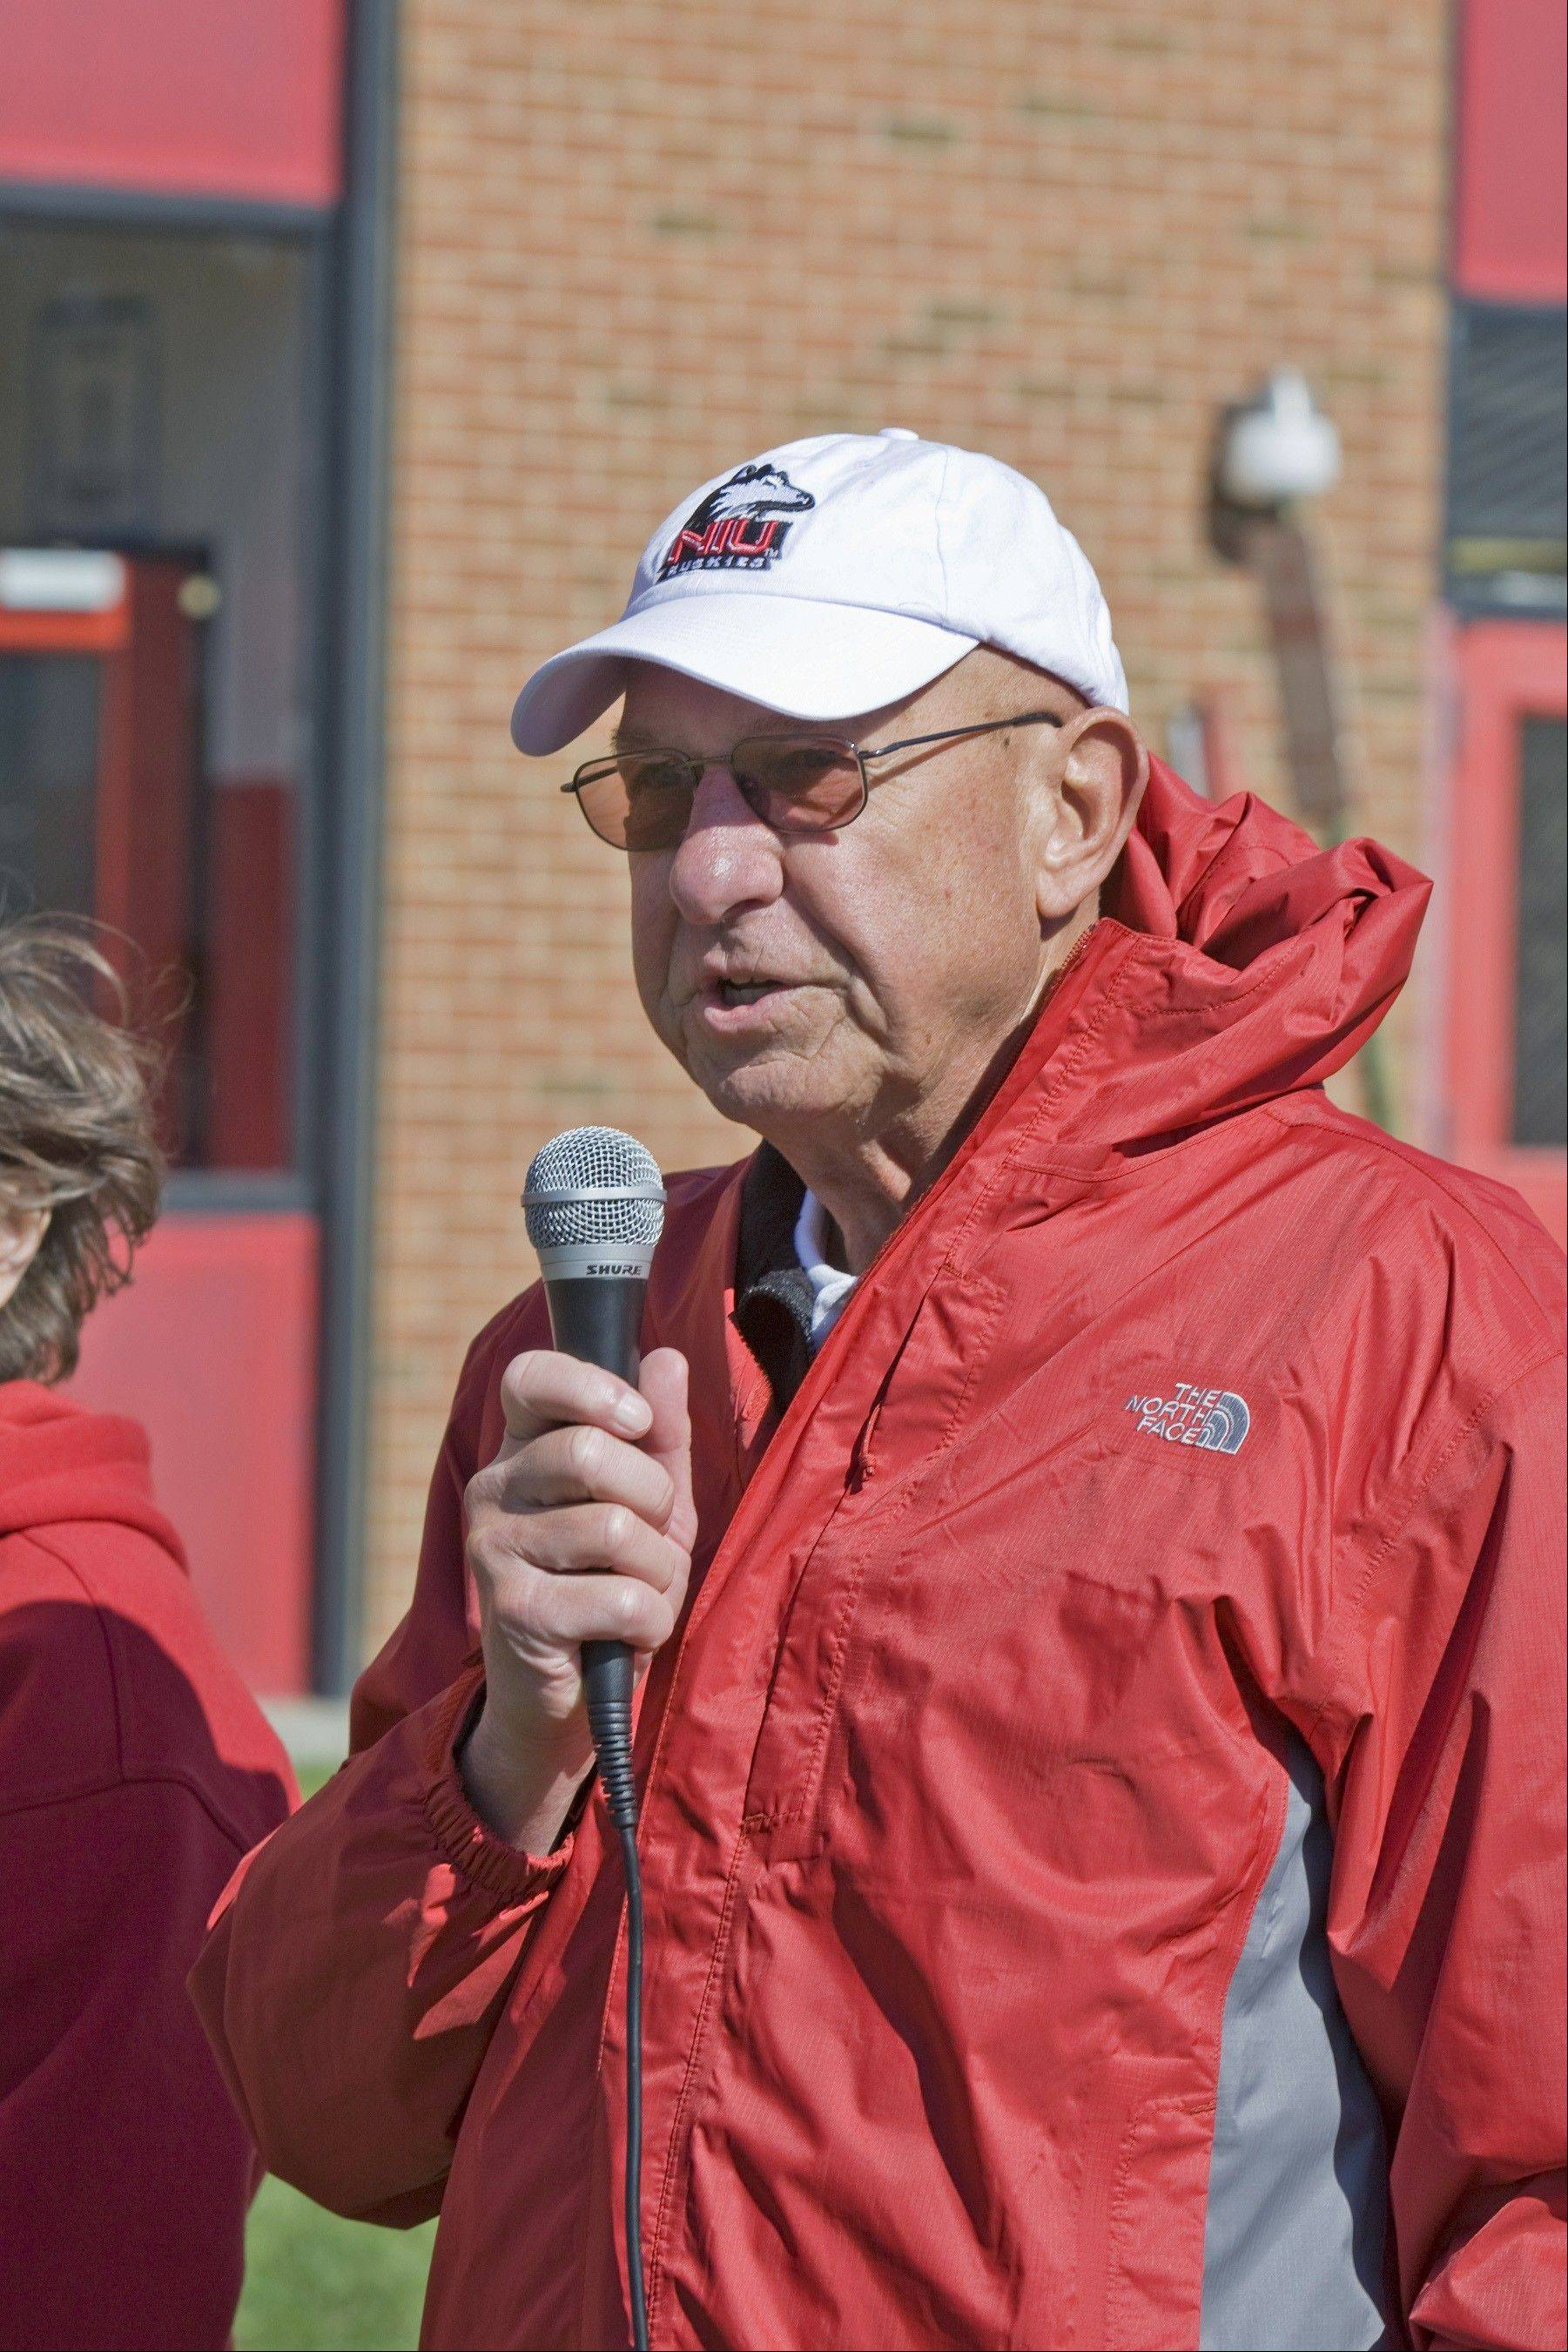 Former all-American quarterback George Bork, who led an unbeaten 1963 NIU football team to the small college national title, believes the Huskies can compete with Florida State in their Orange Bowl matchup. Bork, who played at Arlington High School, was the first major college quarterback to pass for more than 3,000 yards.